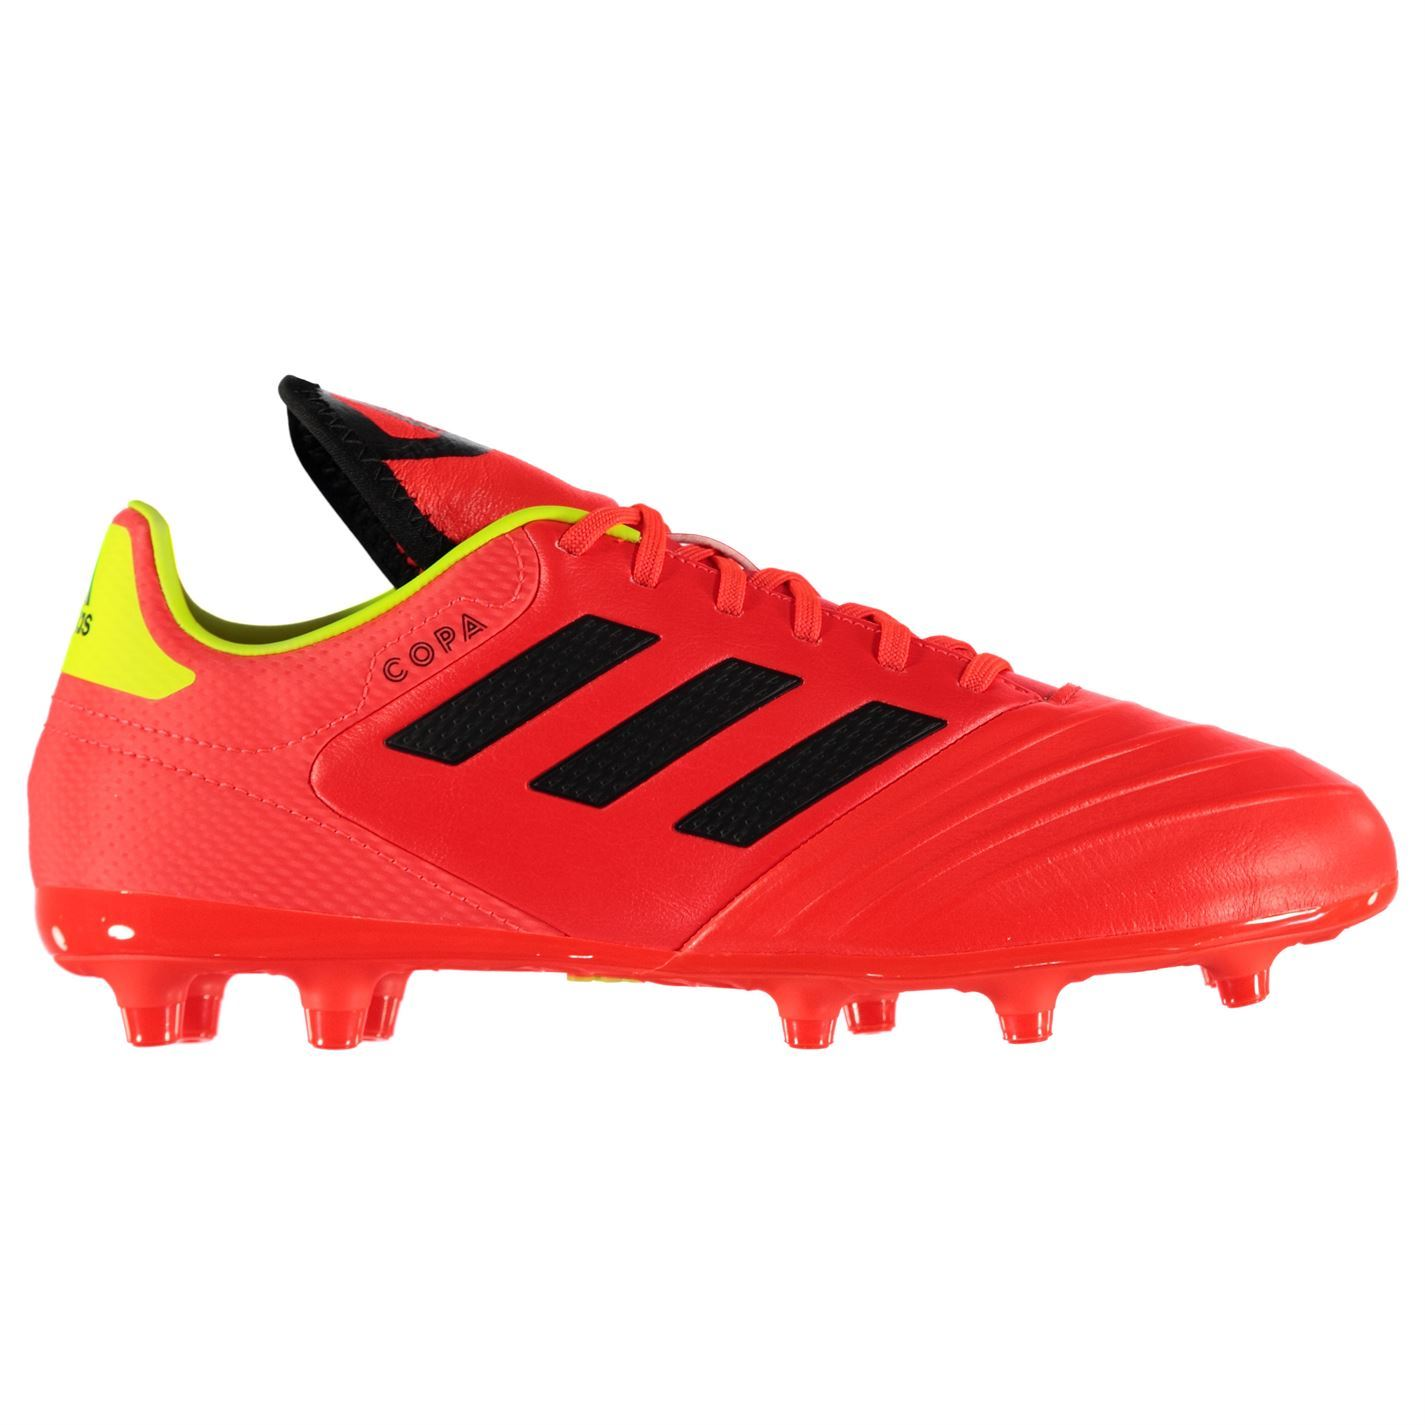 d0dc0ea433a ... adidas Copa 18.3 FG Firm Ground Football Boots Mens Red Black Soccer Shoe  Cleats ...